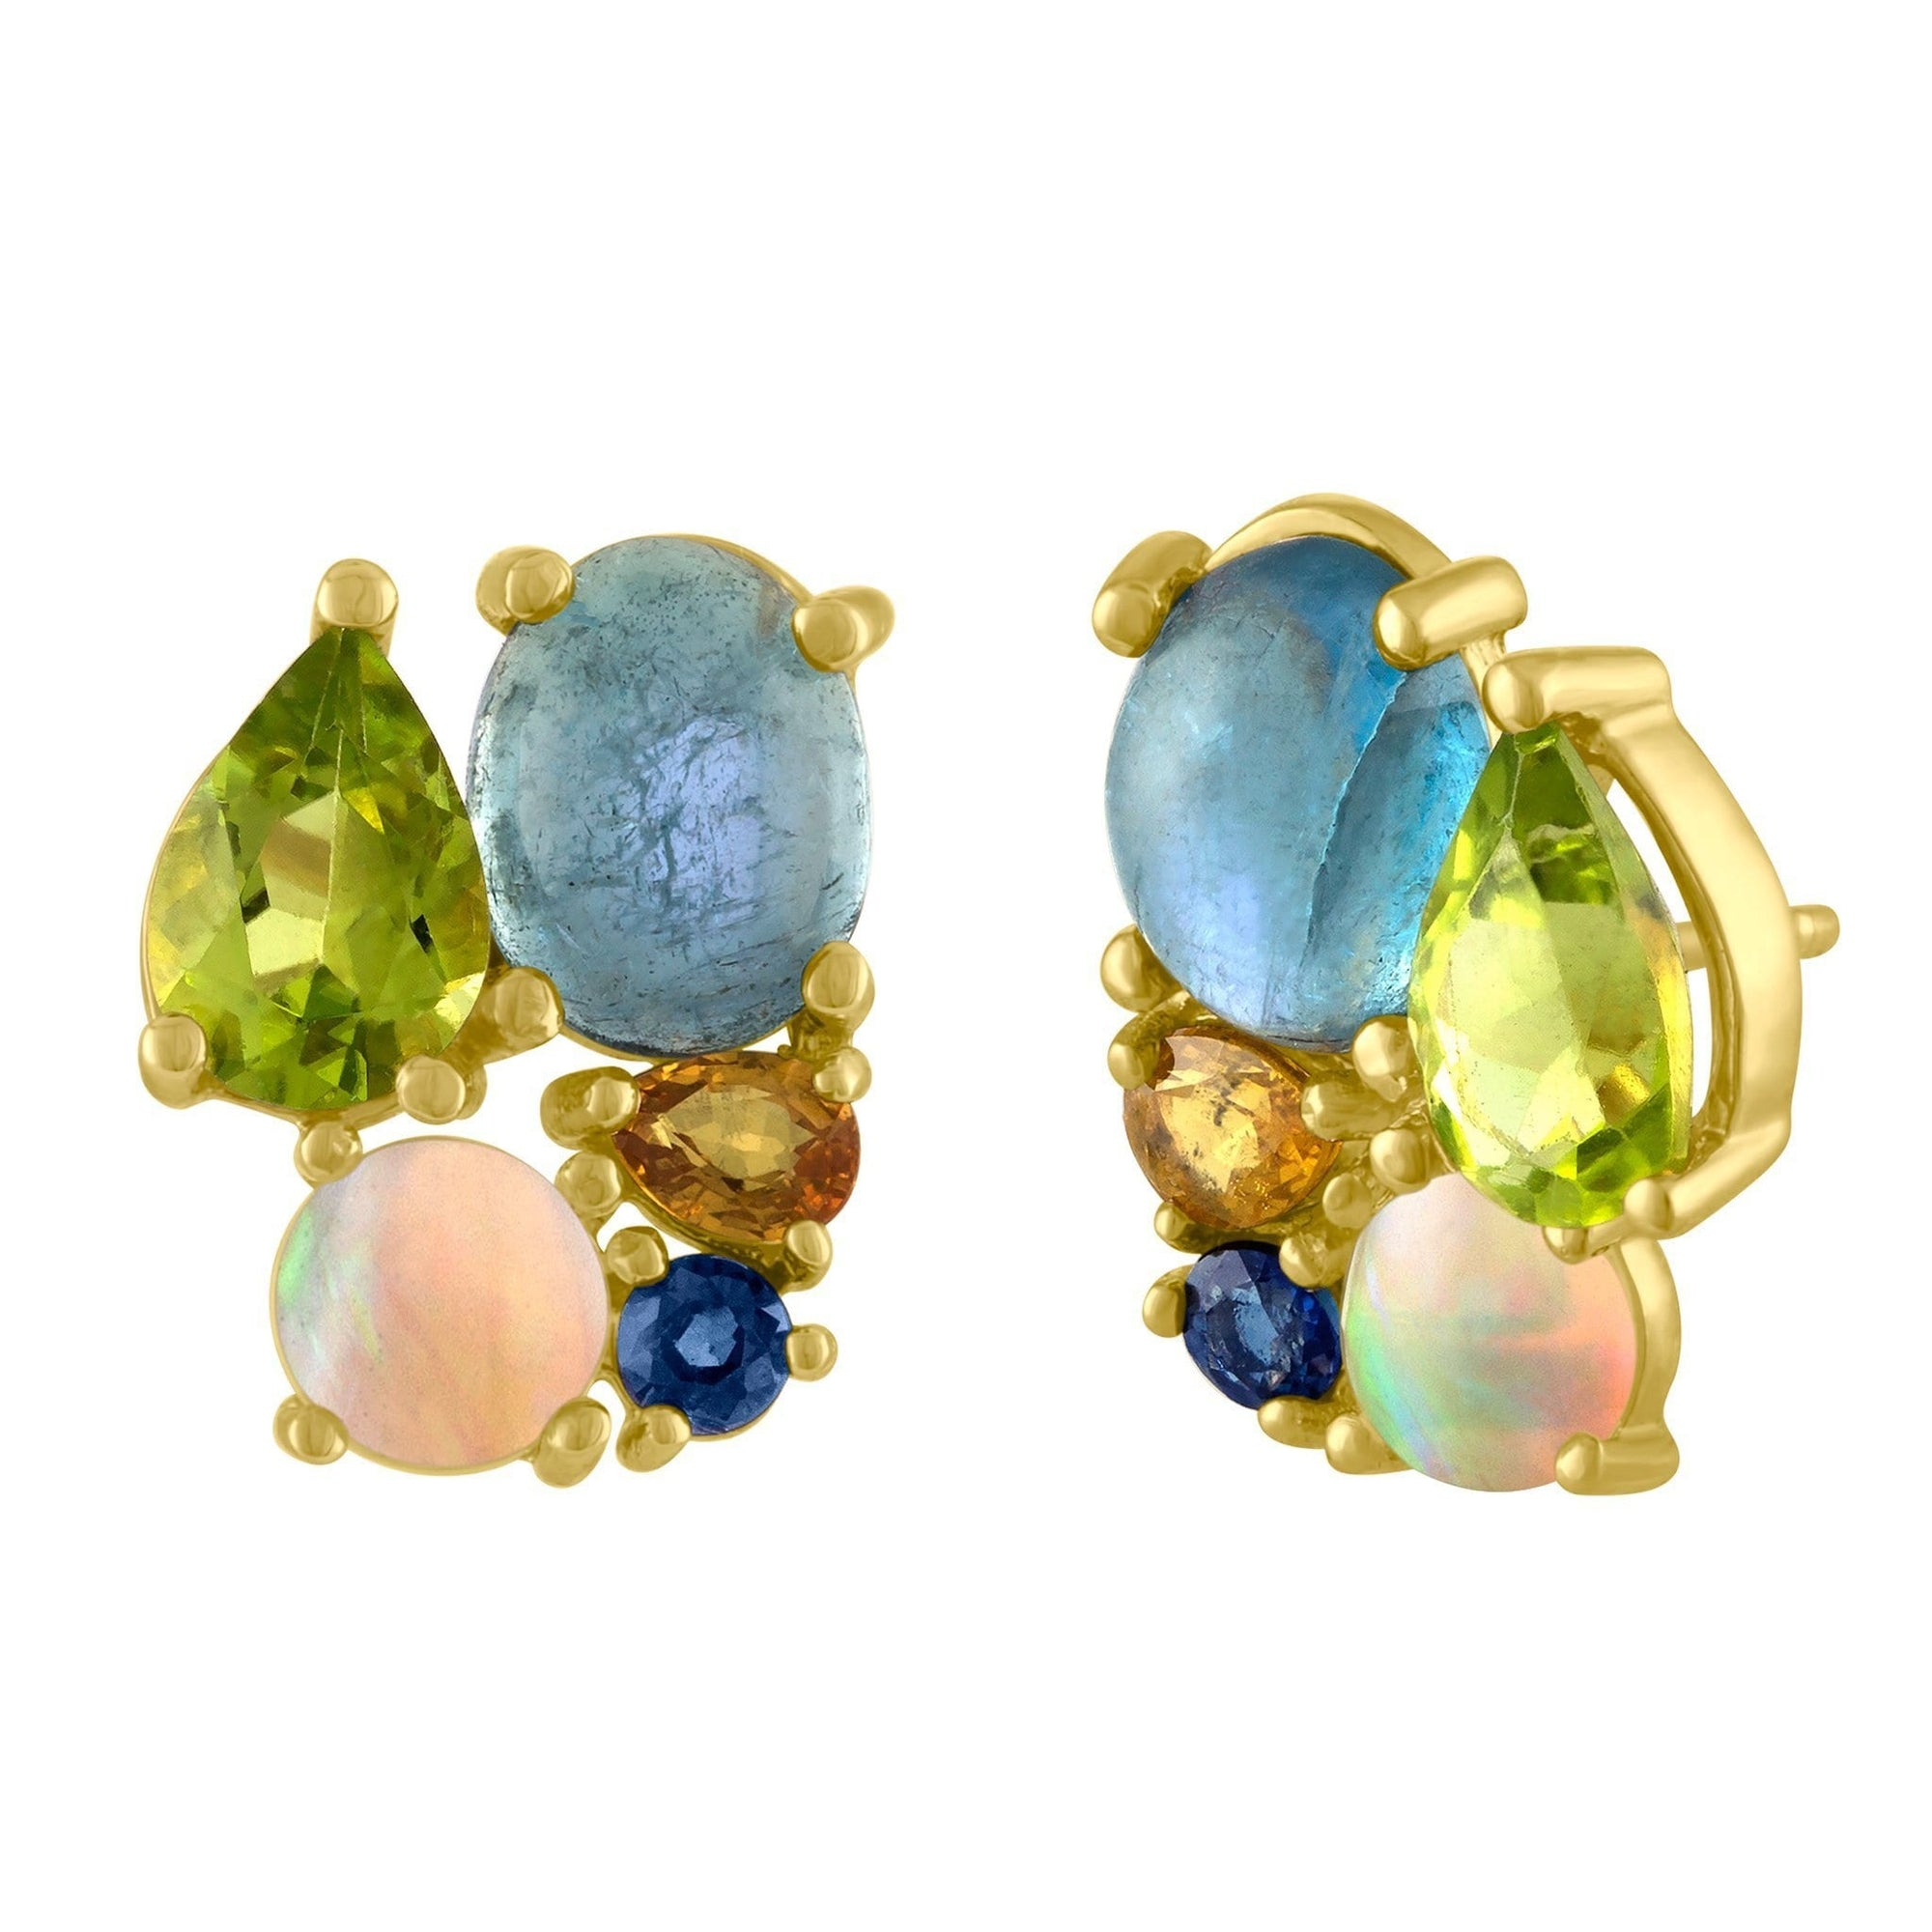 Bon Bon Stud Earrings: 14k Gold, Peridot, Acqua, Opal, Yellow Pear Sapphire, Blue Sapphire